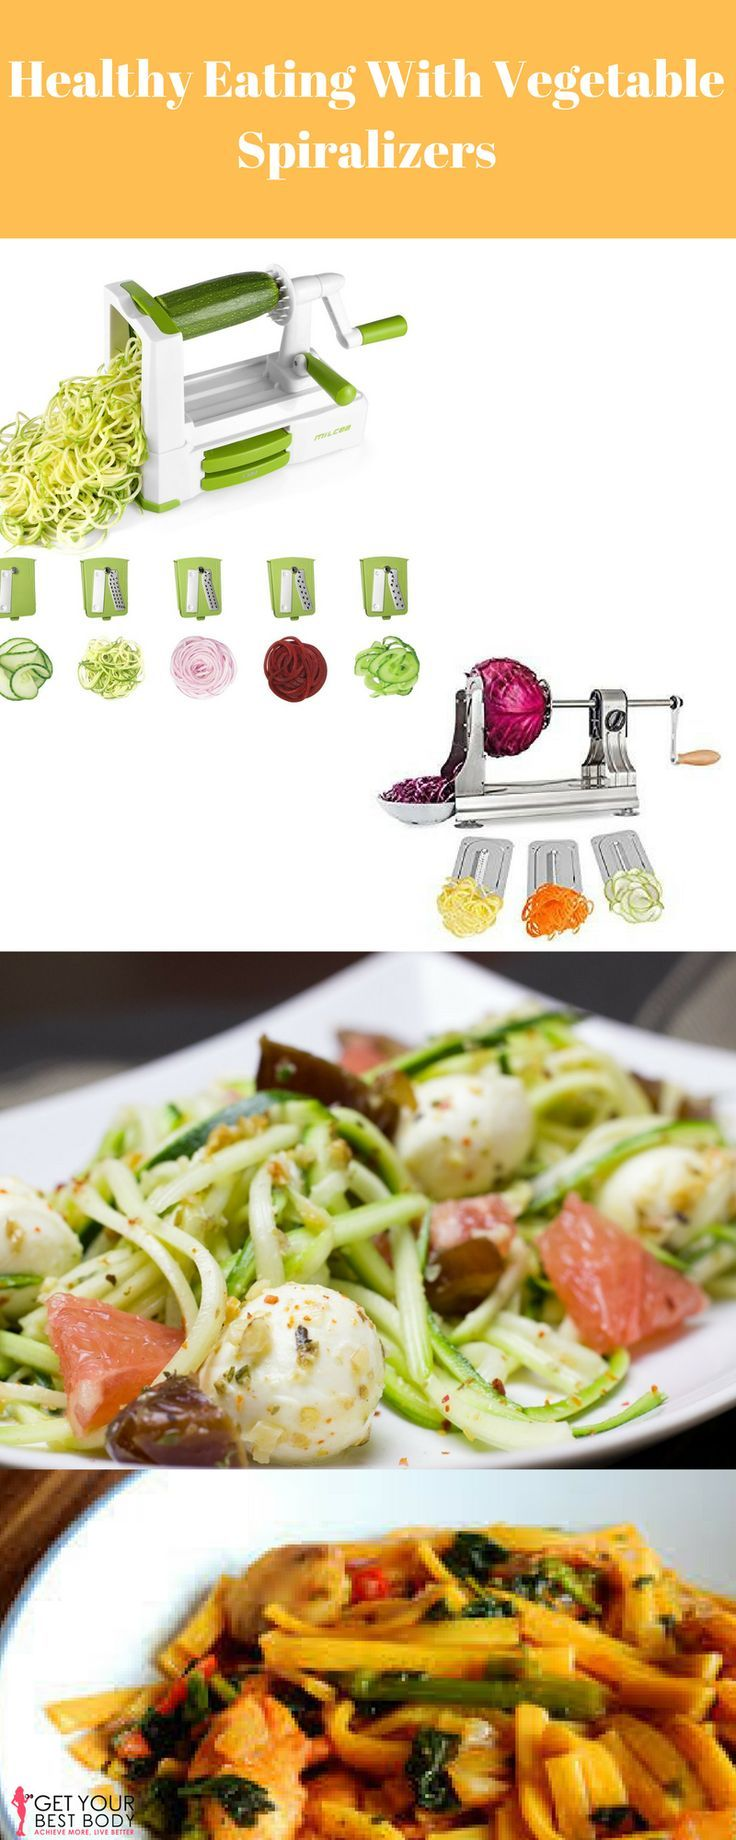 Lose weight with spiralizers for vegetables foods recipe blogs lose weight with spiralizers for vegetables foods recipe blogs and vegans forumfinder Choice Image